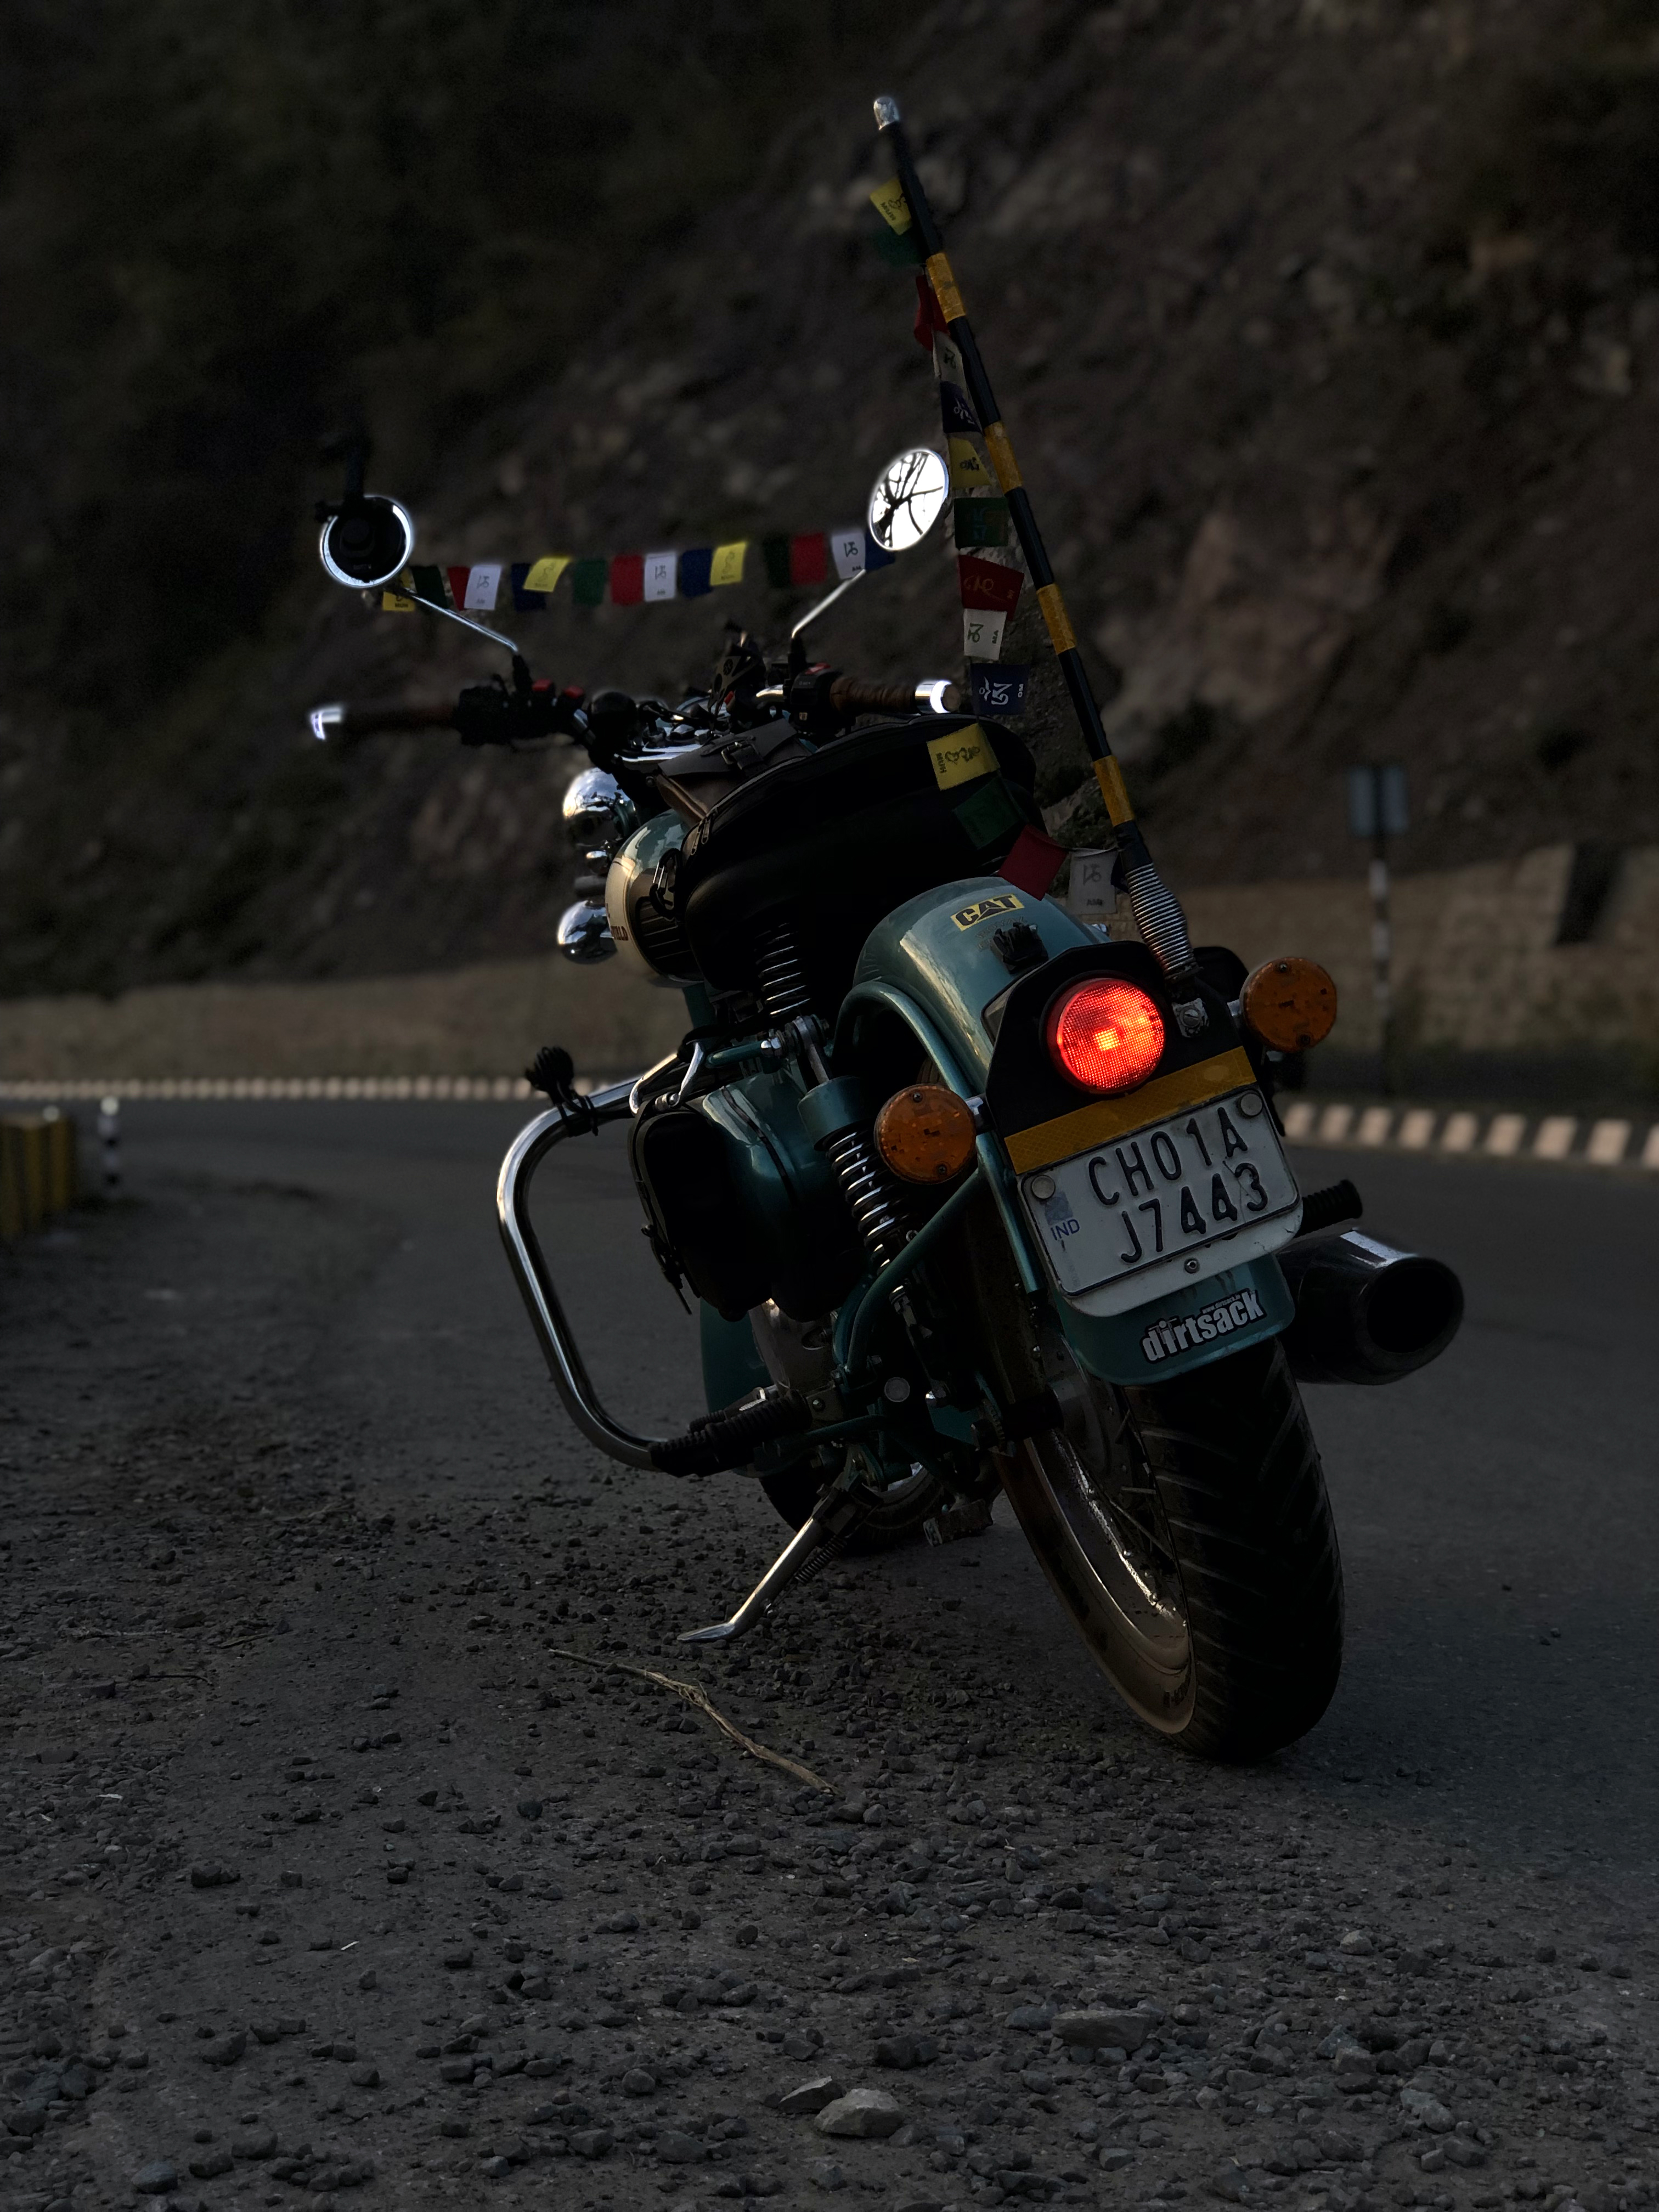 Photo of Parked Motorcycle Beside Road